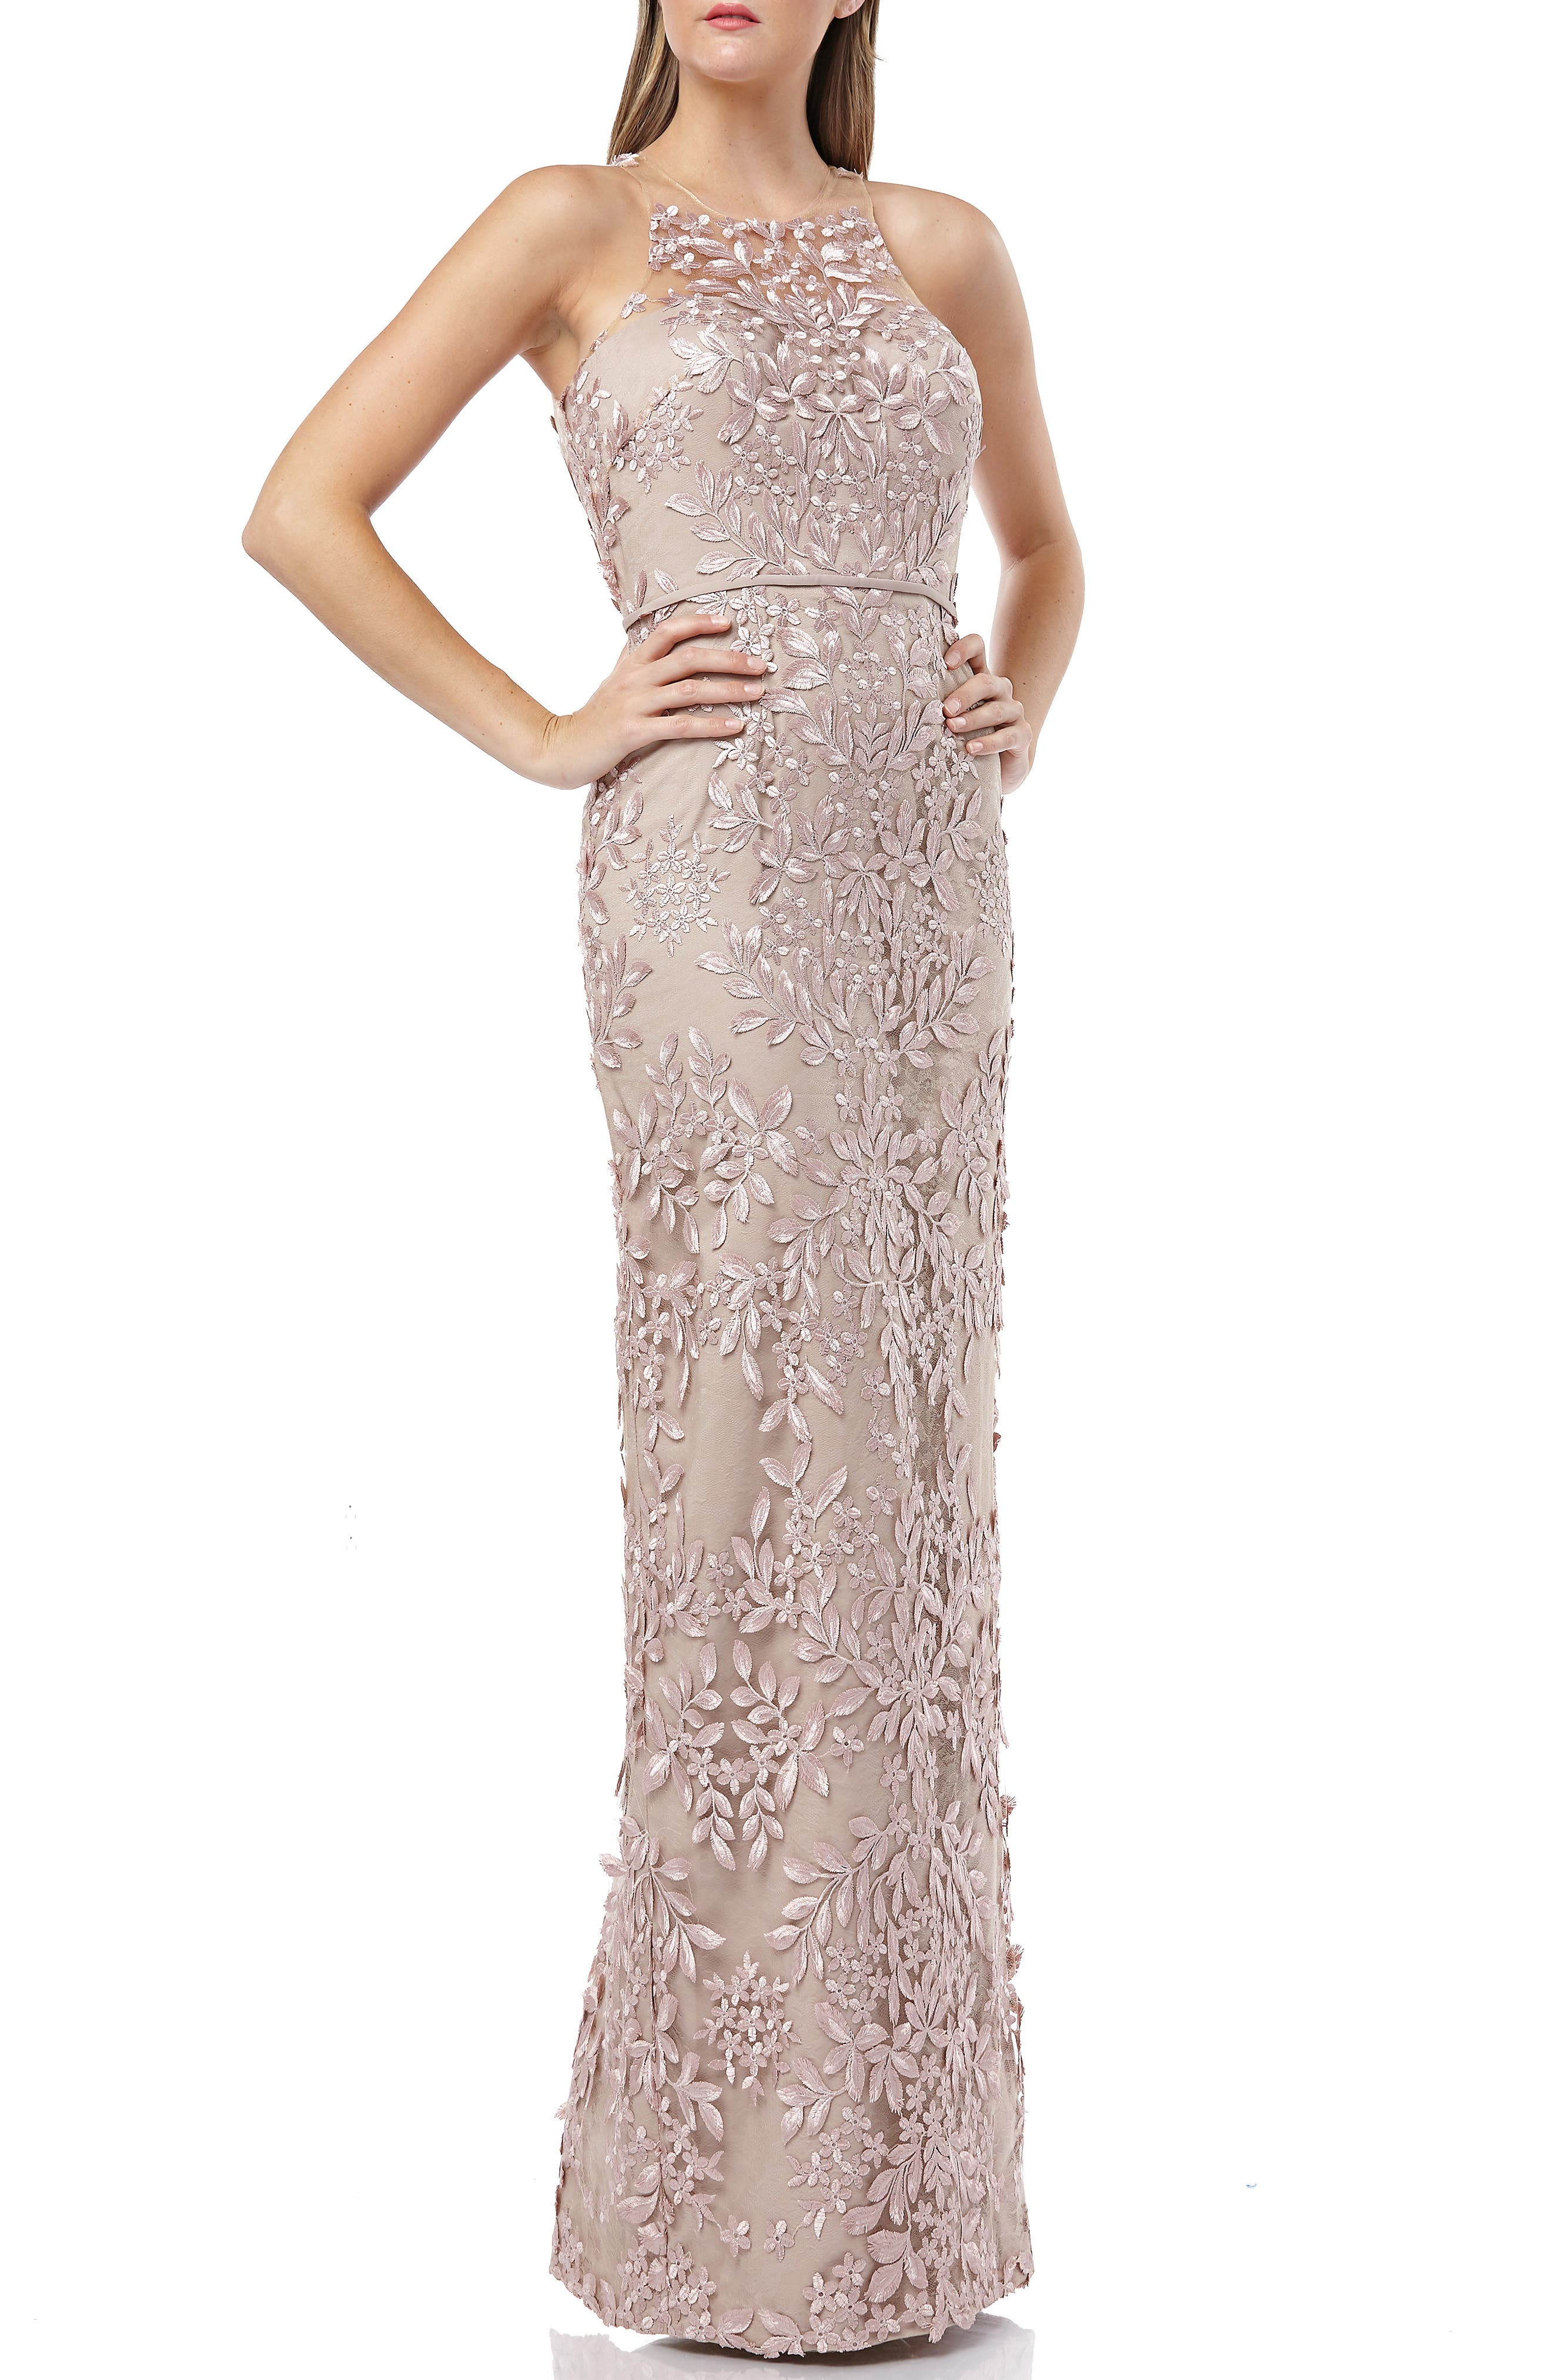 Js Collections 3D Embroidered Mesh Evening Dress, Beige